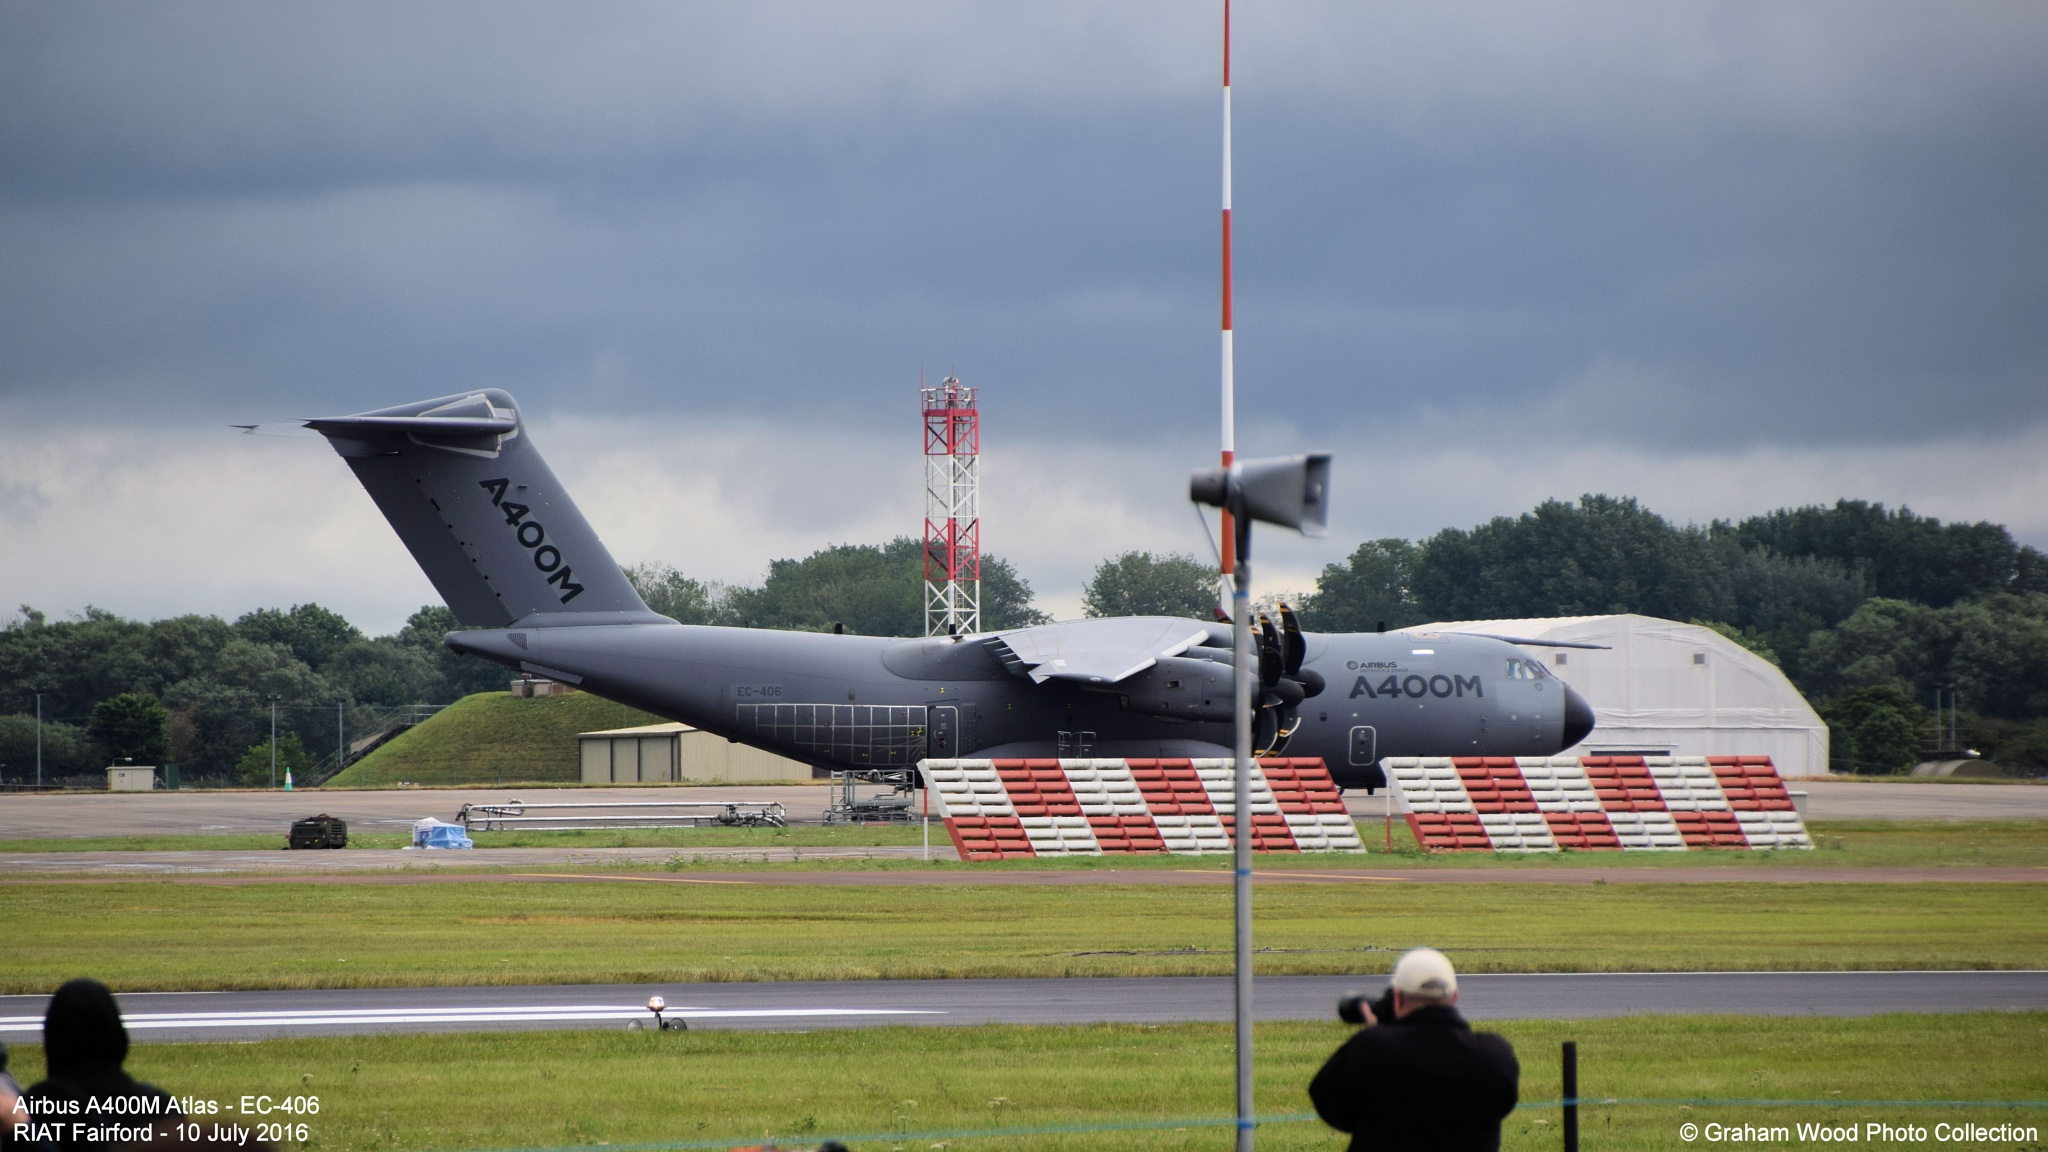 Airbus A400M Atlas - EC-406 by Graham Wood Photo Collection